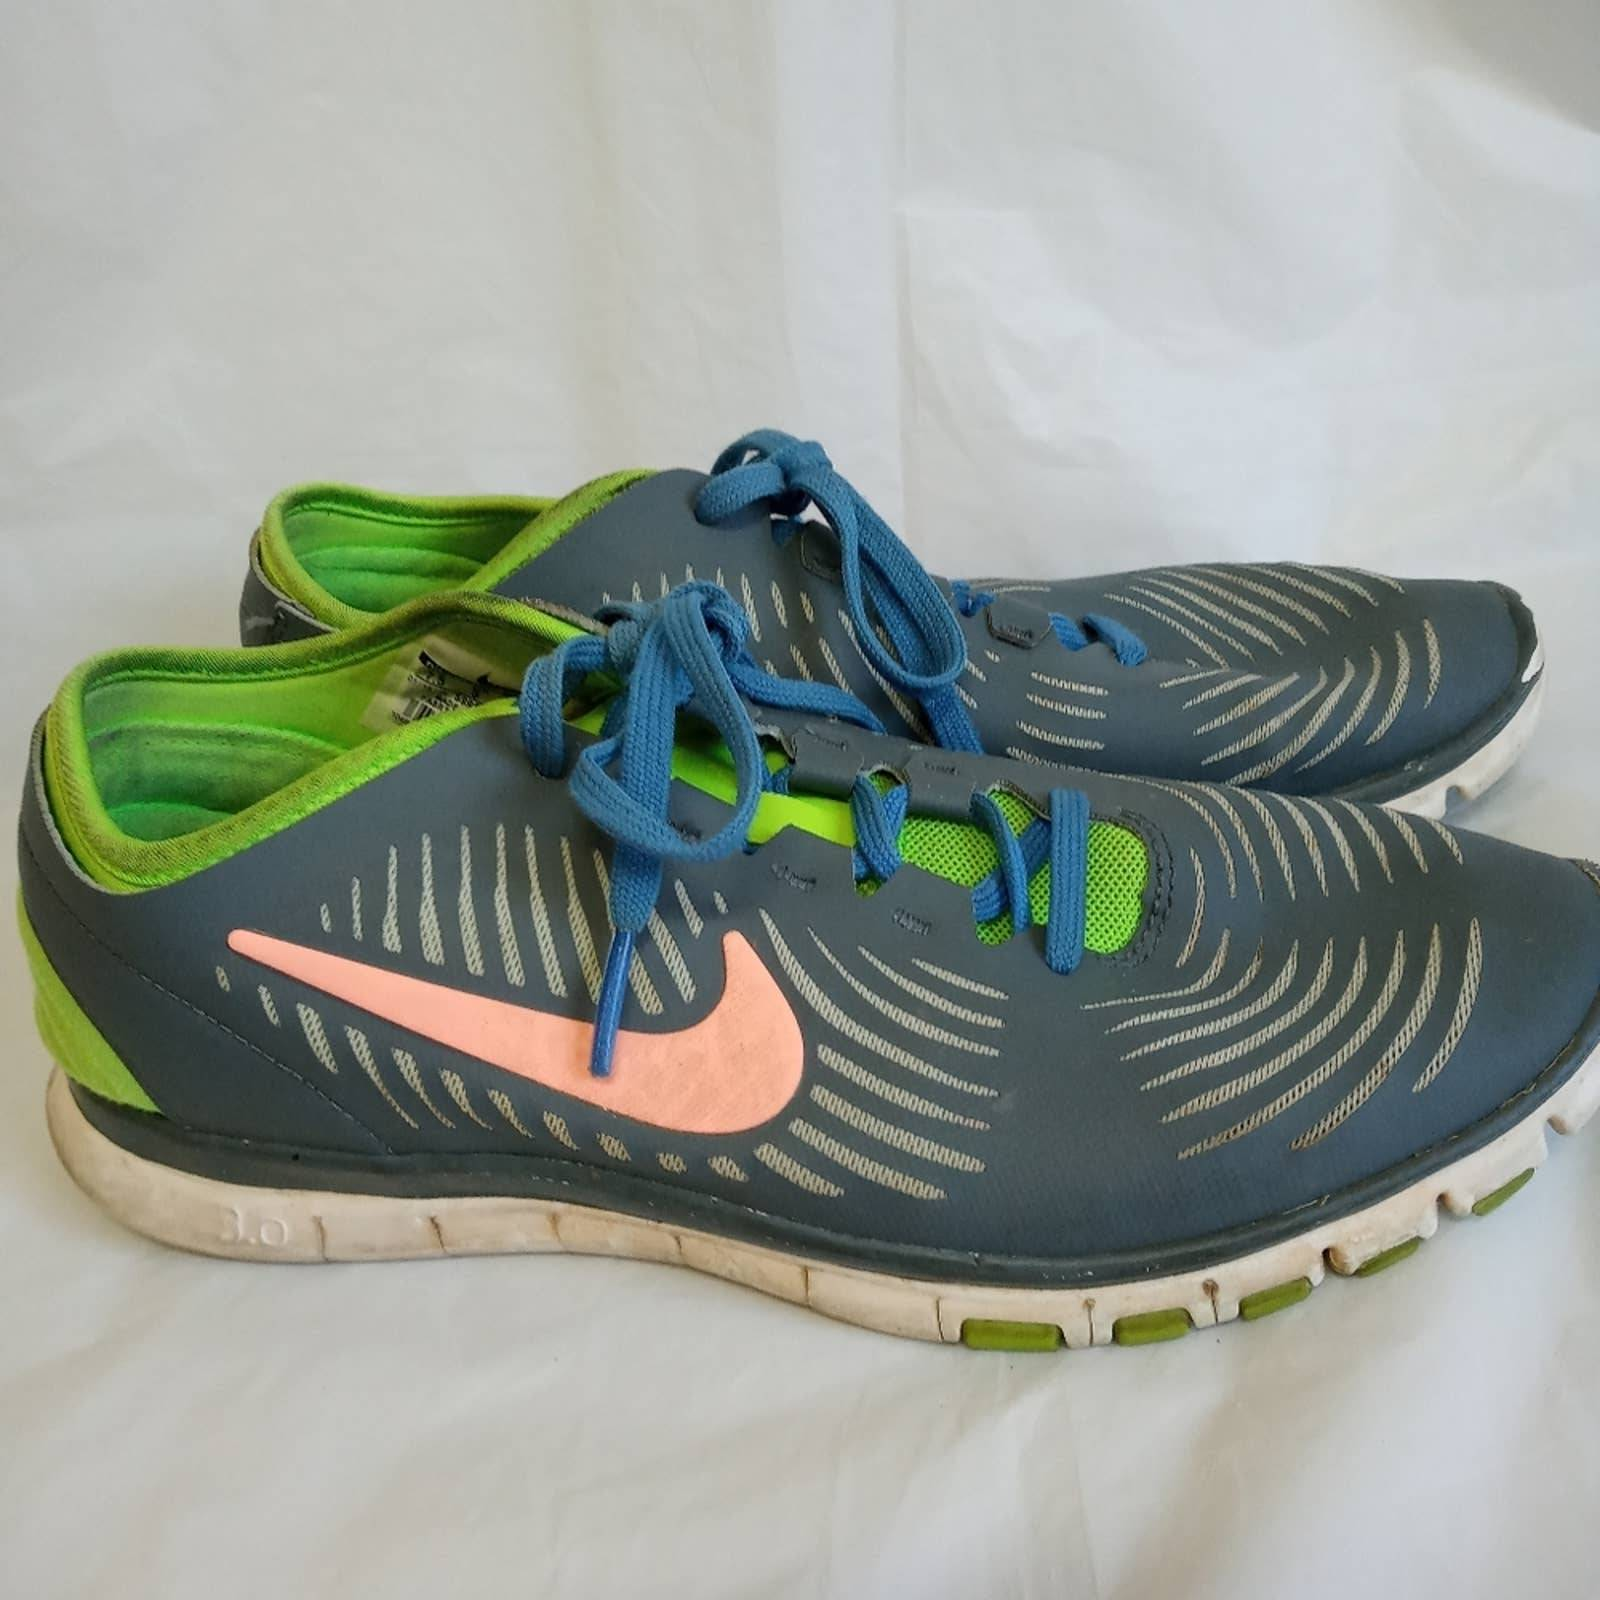 Nike Free Gray Green Blue athletic shoes